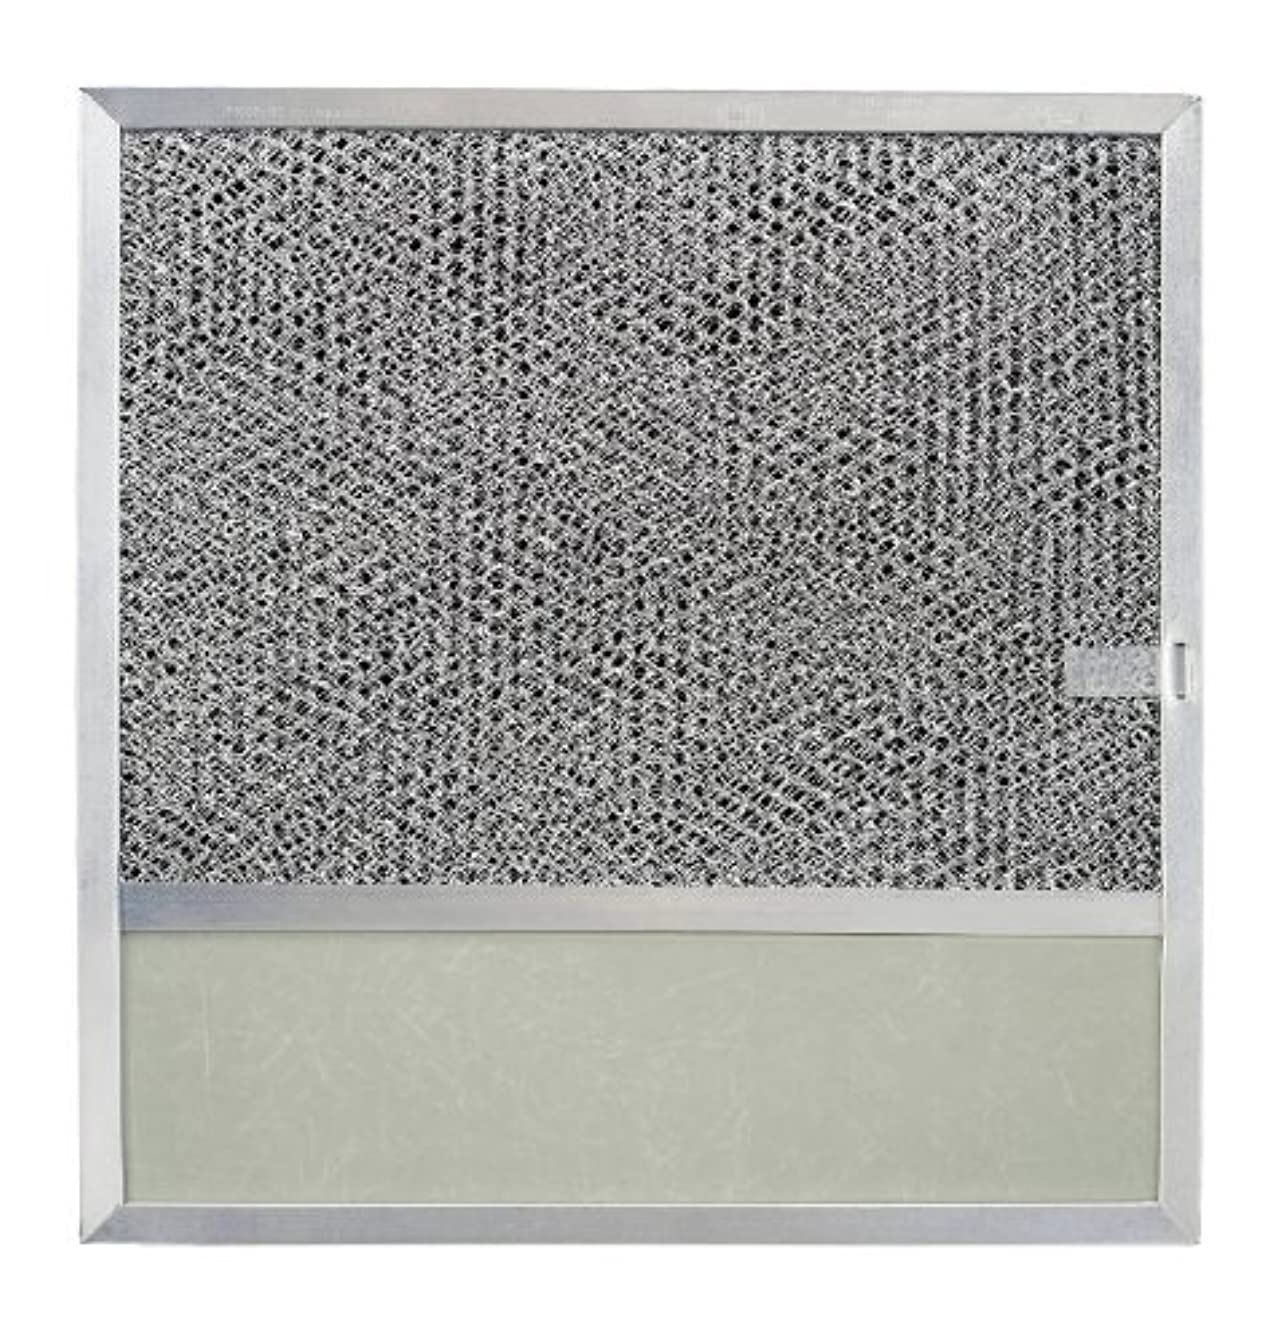 Broan BP57 Aluminum Filter With Light Lens for 43000 Series Range Hood, 11-3/8 x 11-3/4-Inch kctmgsccabsif51